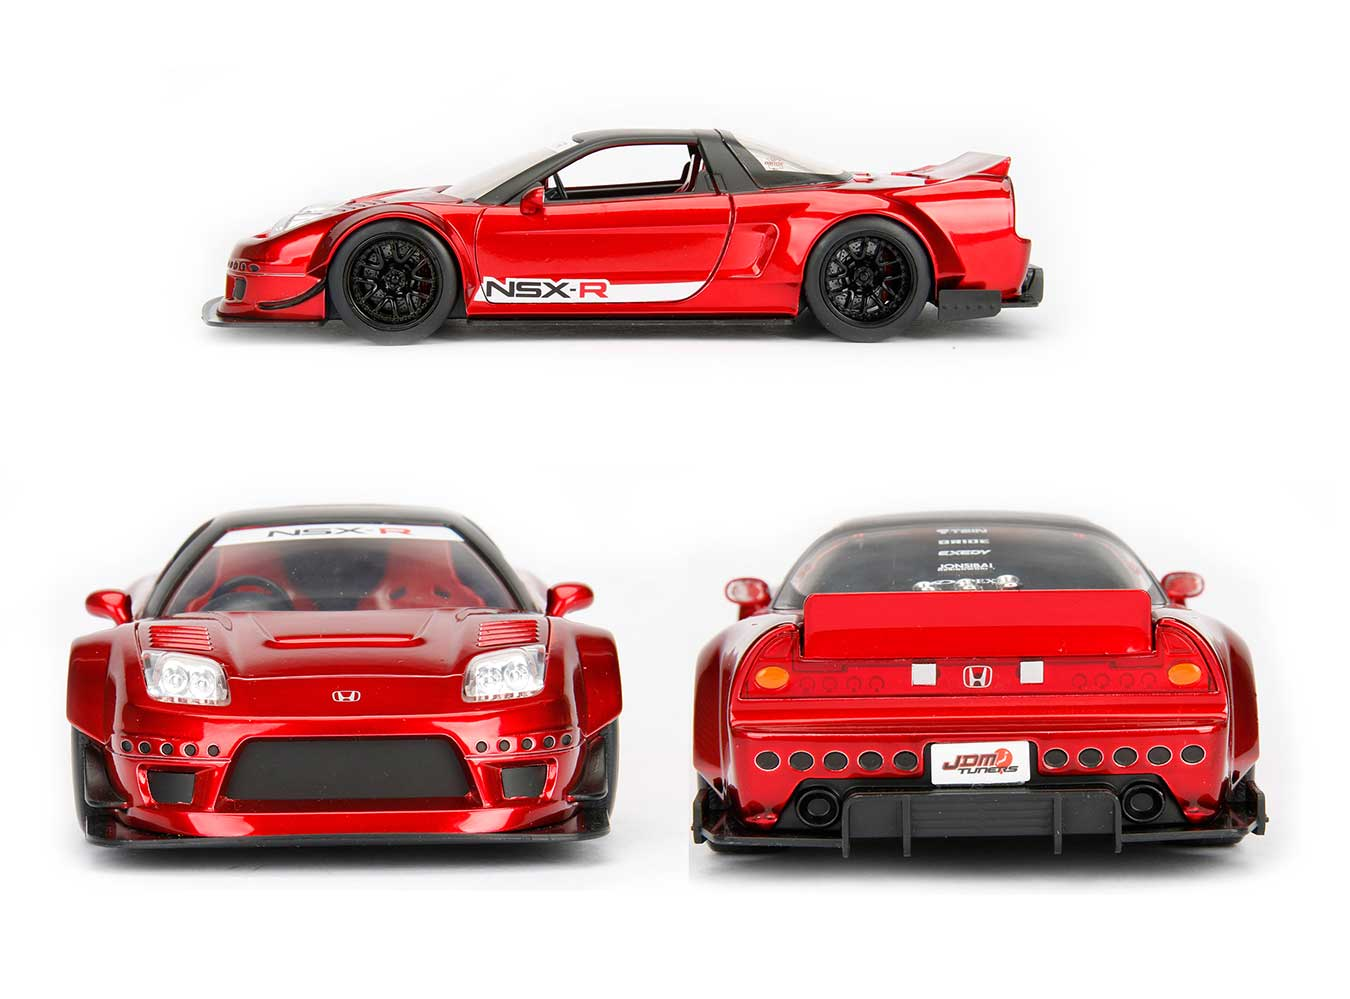 jdm tuners 2002 honda nsx type r japan spec candy red 1 24 scale. Black Bedroom Furniture Sets. Home Design Ideas